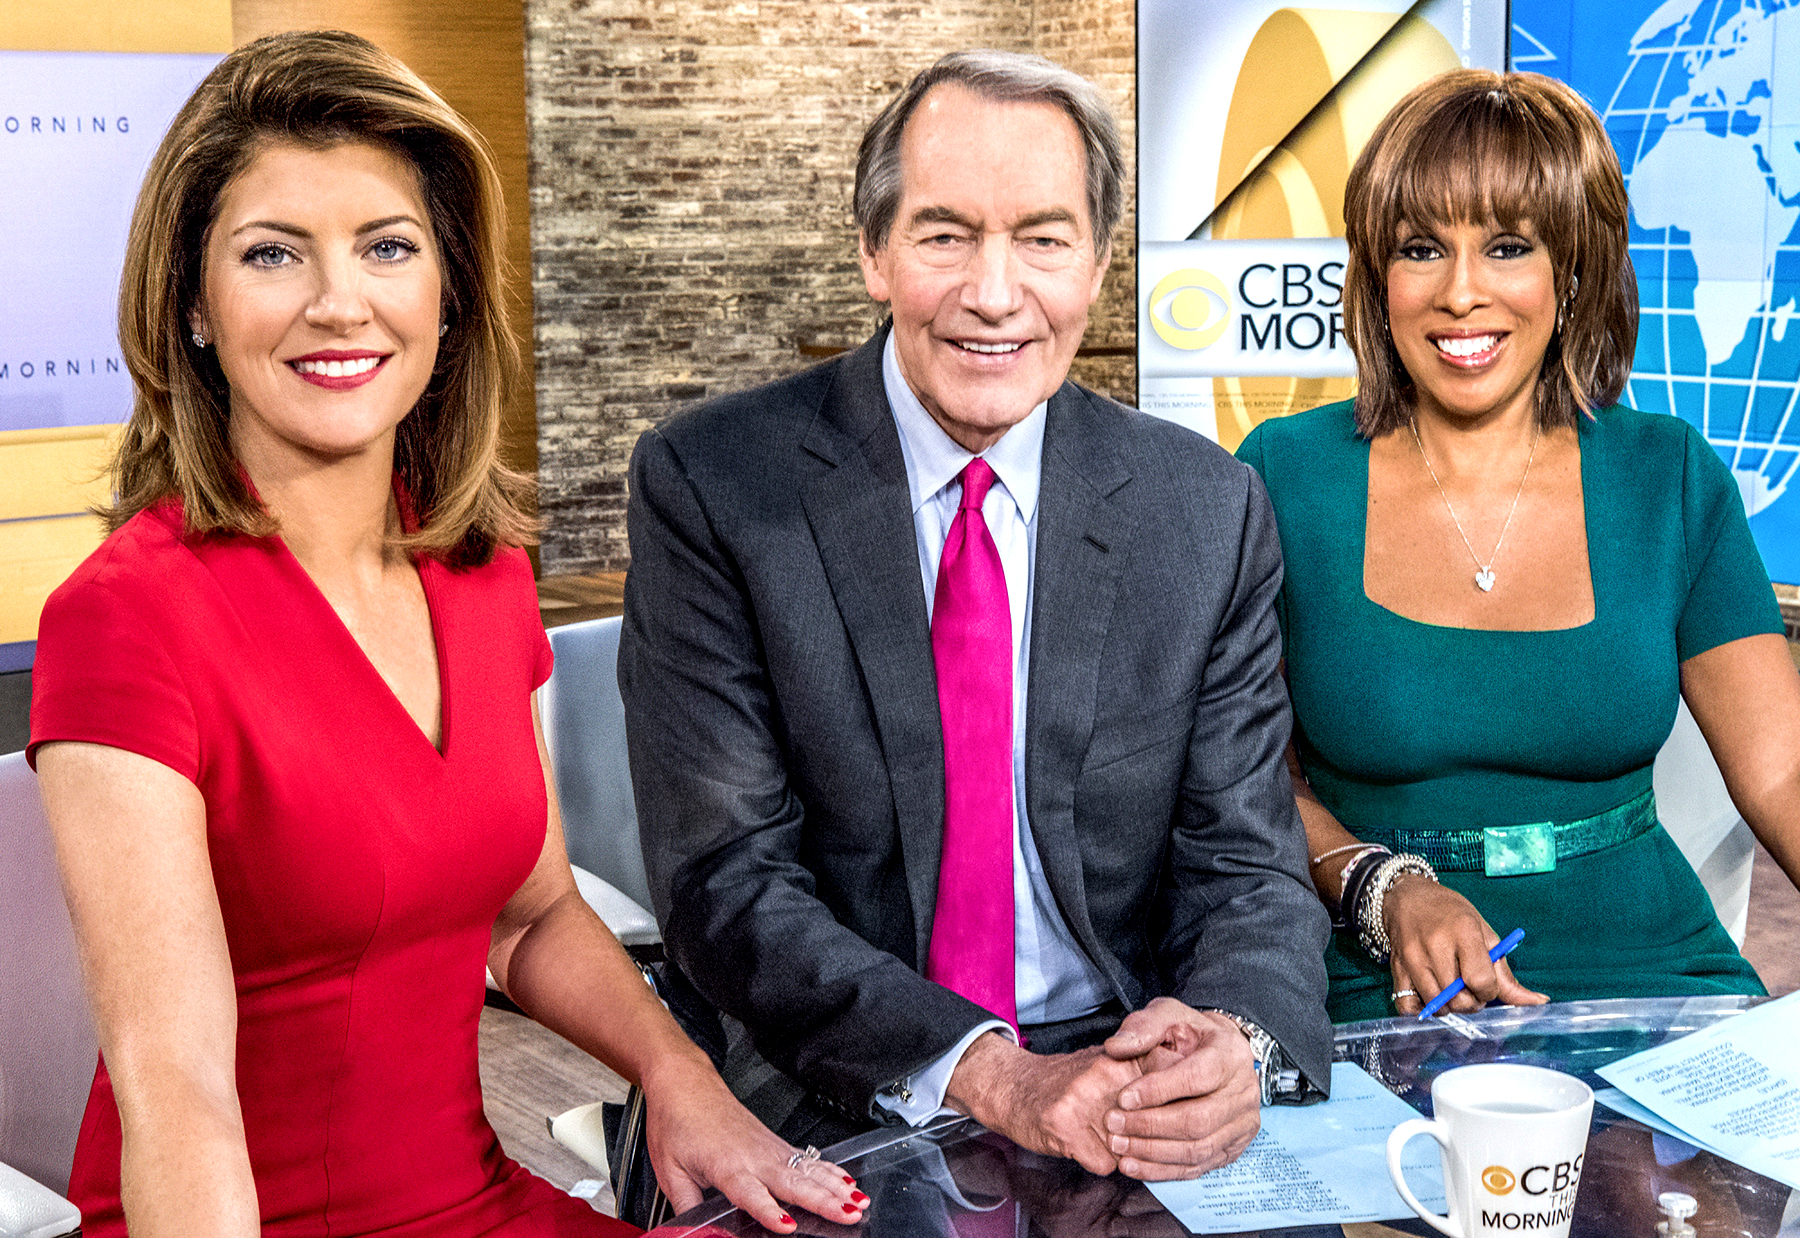 CBS This Morning: Norah O'Donnell, Charlie Rose and Gayle King.